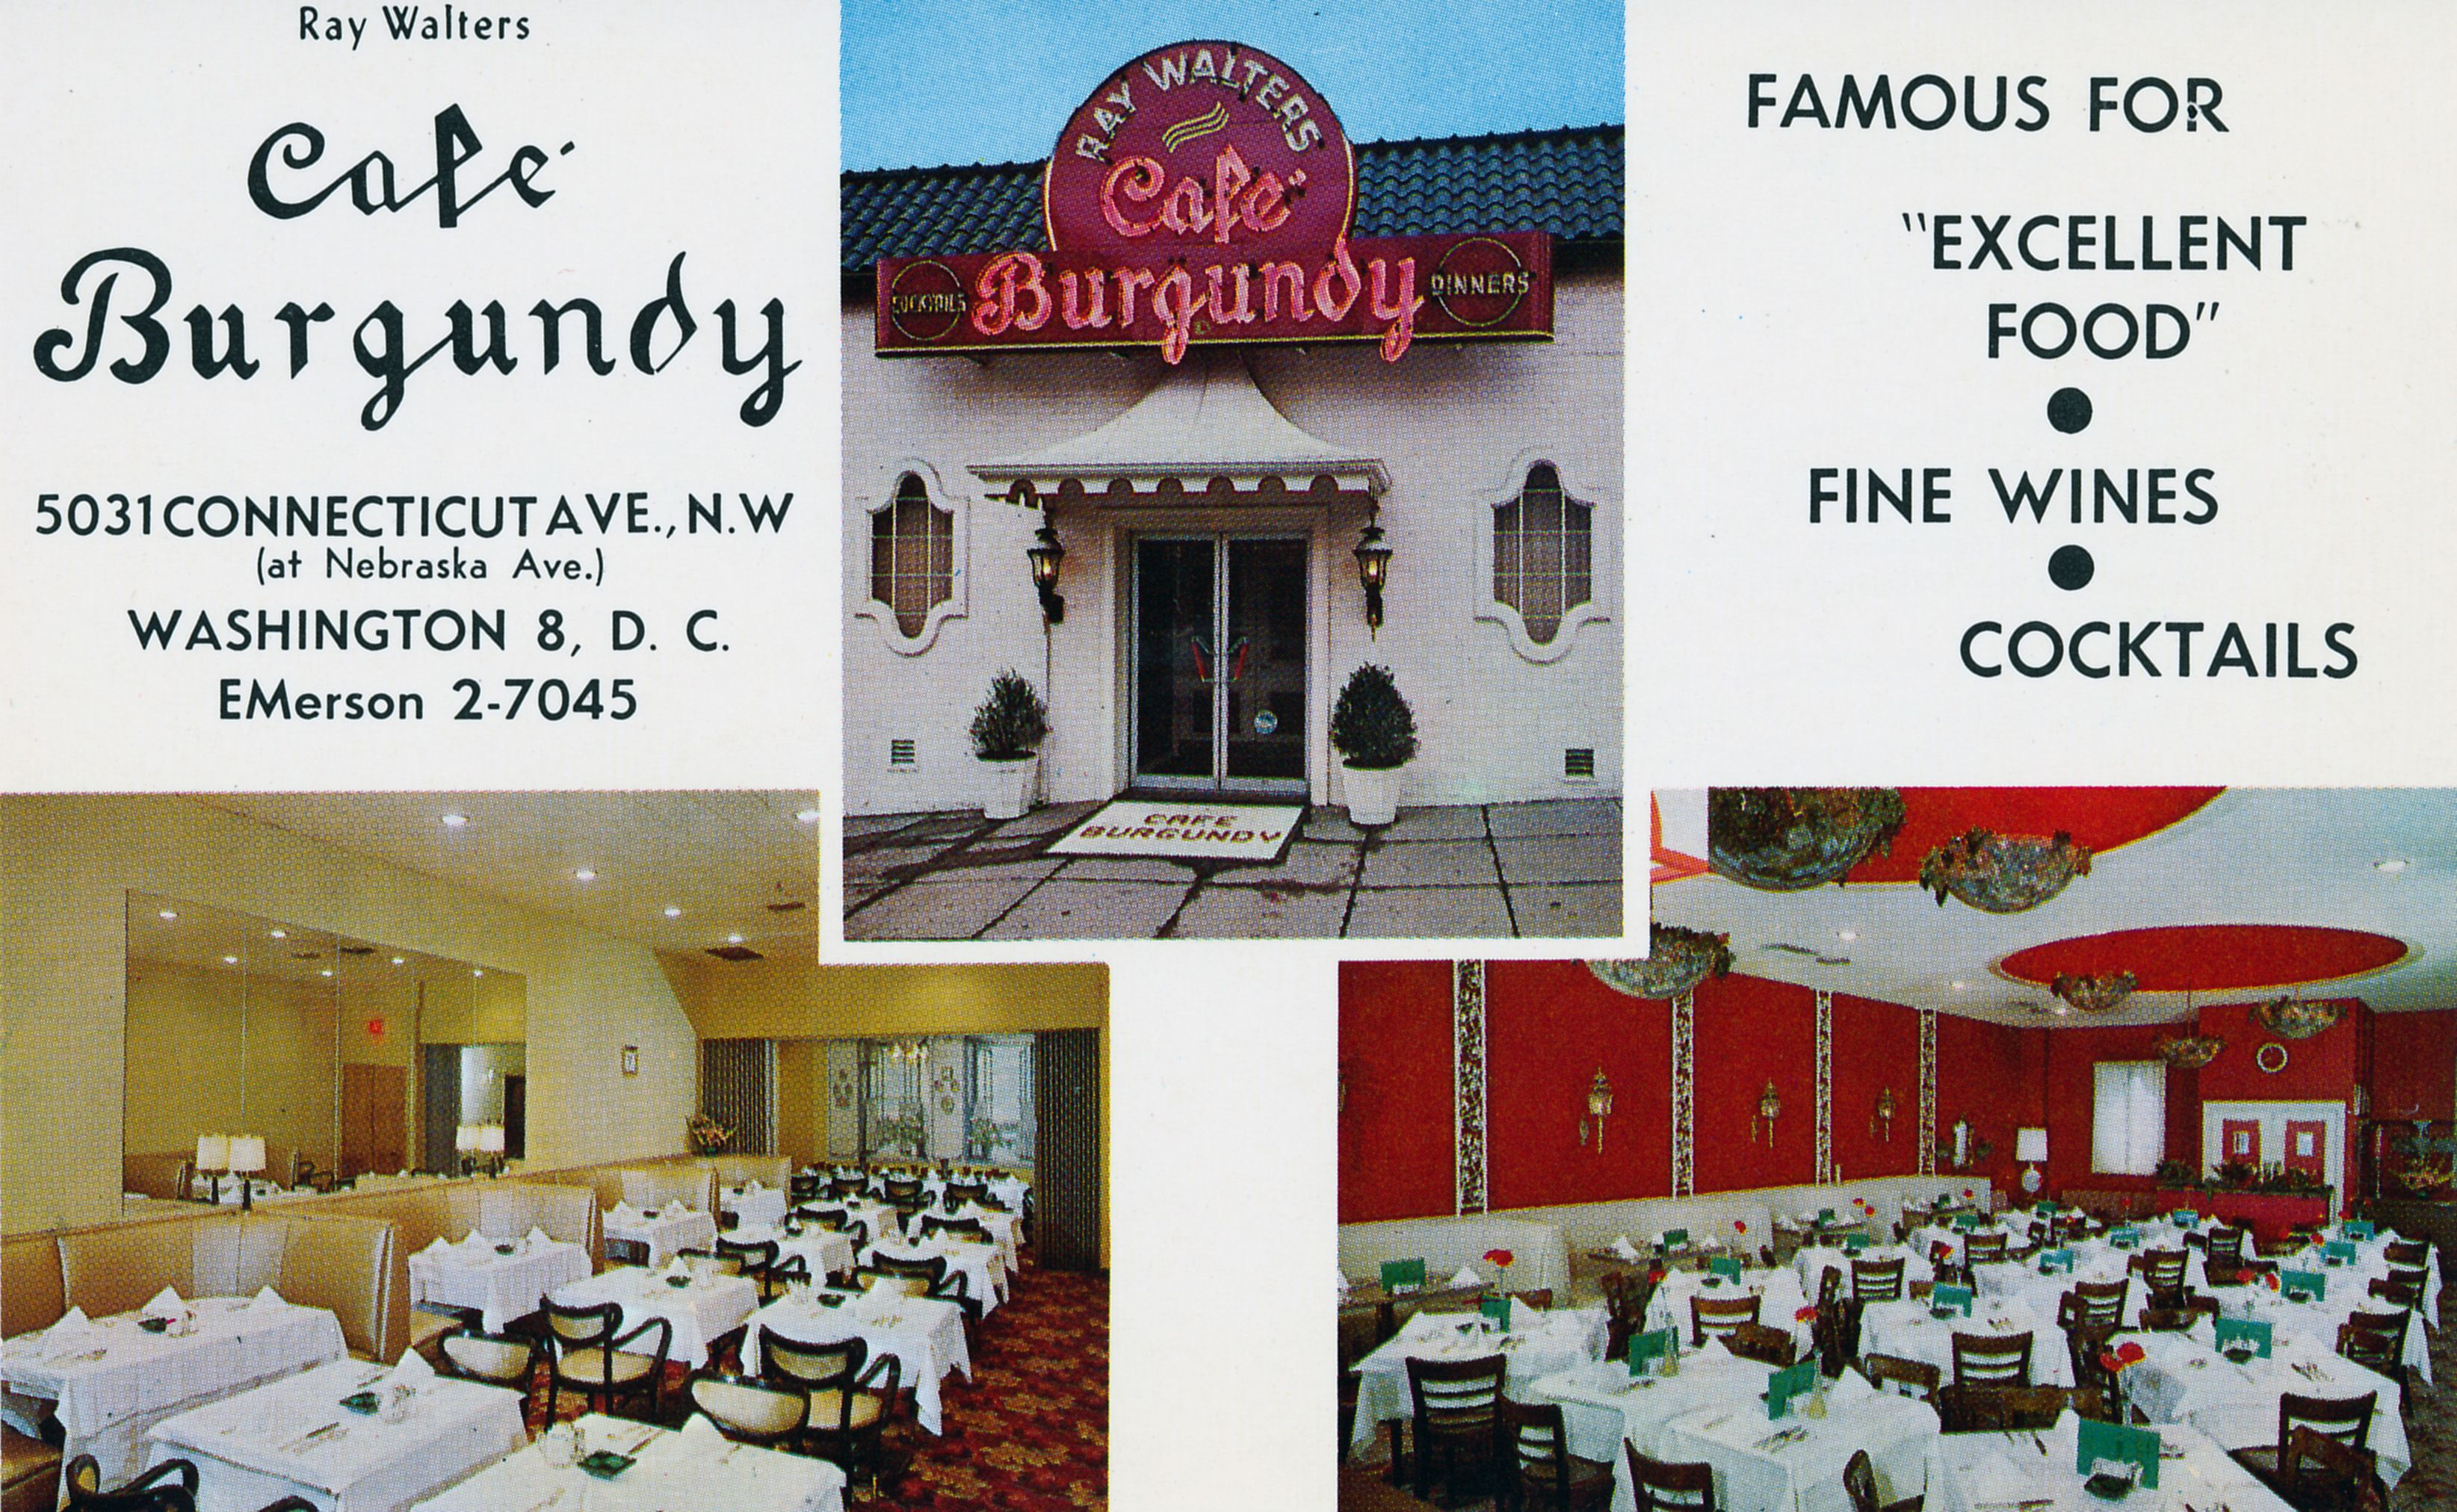 Opened at 5031 Connecticut Avenue NW in 1954 by Ray